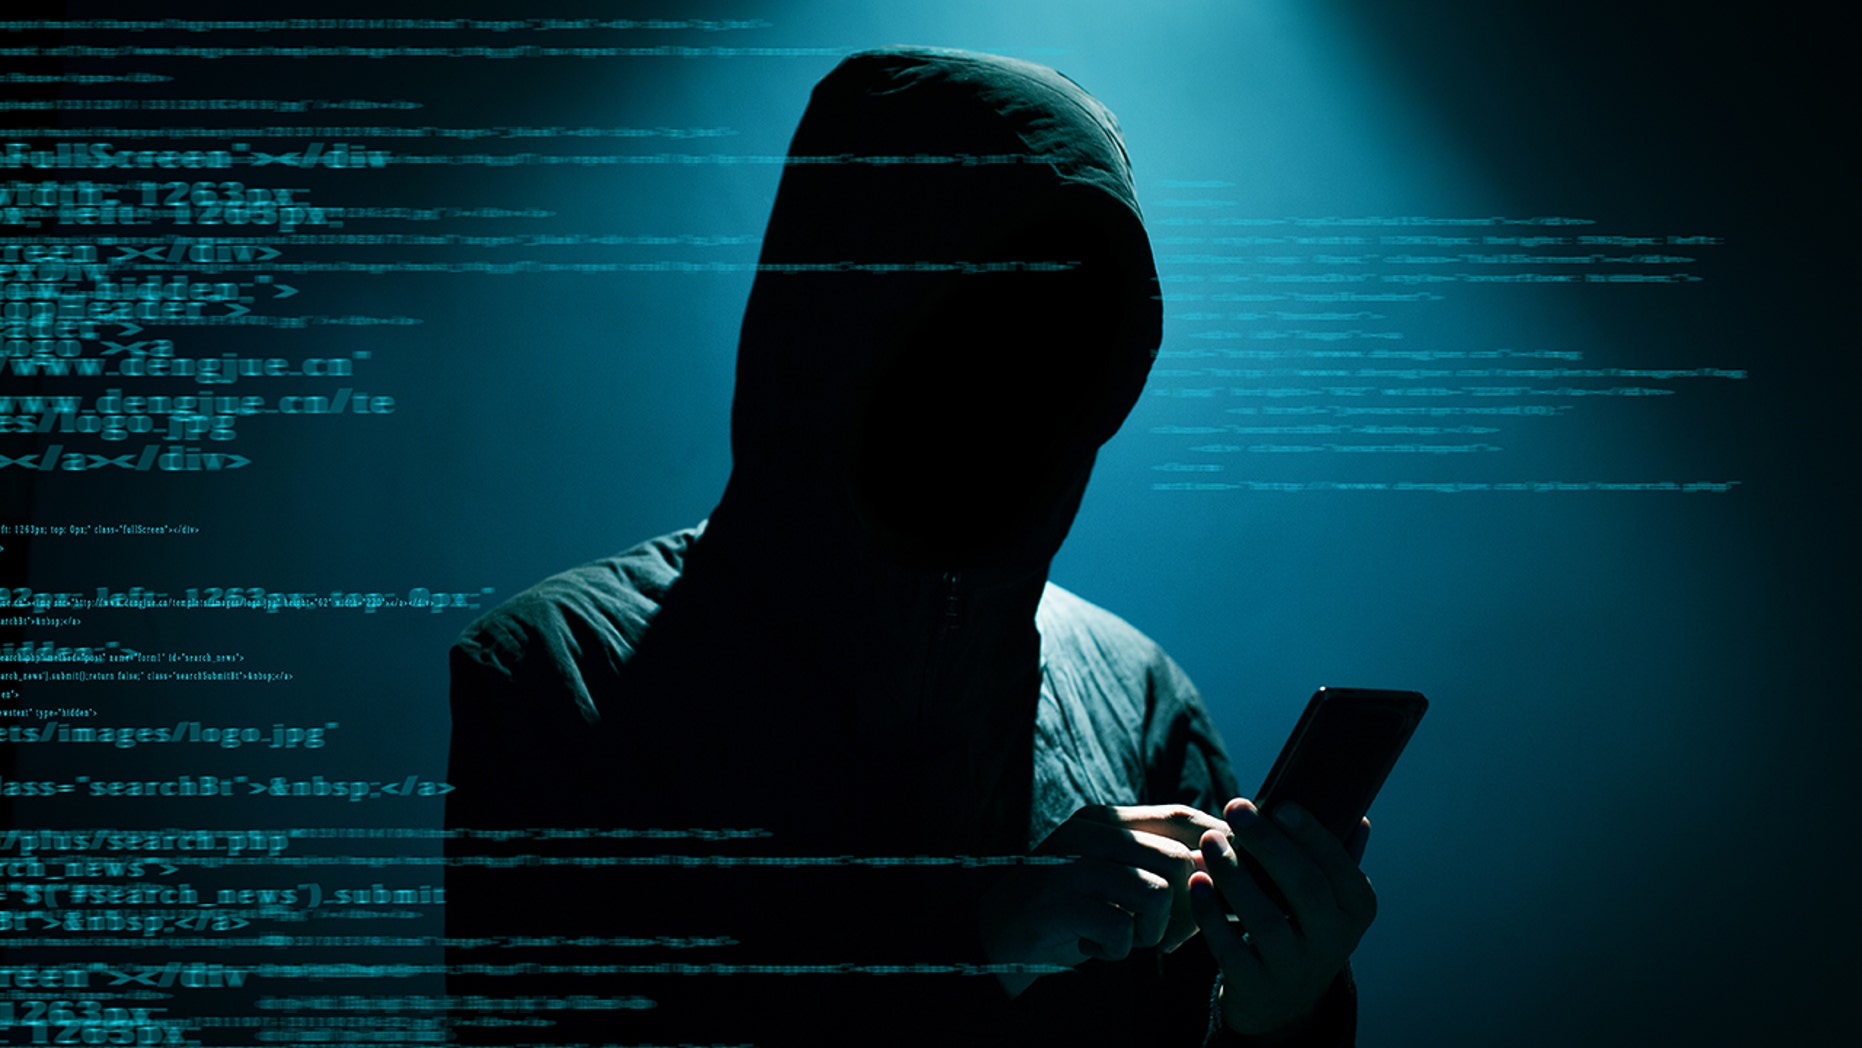 Hacker Hacker using phone at dark (Credit: iStock)